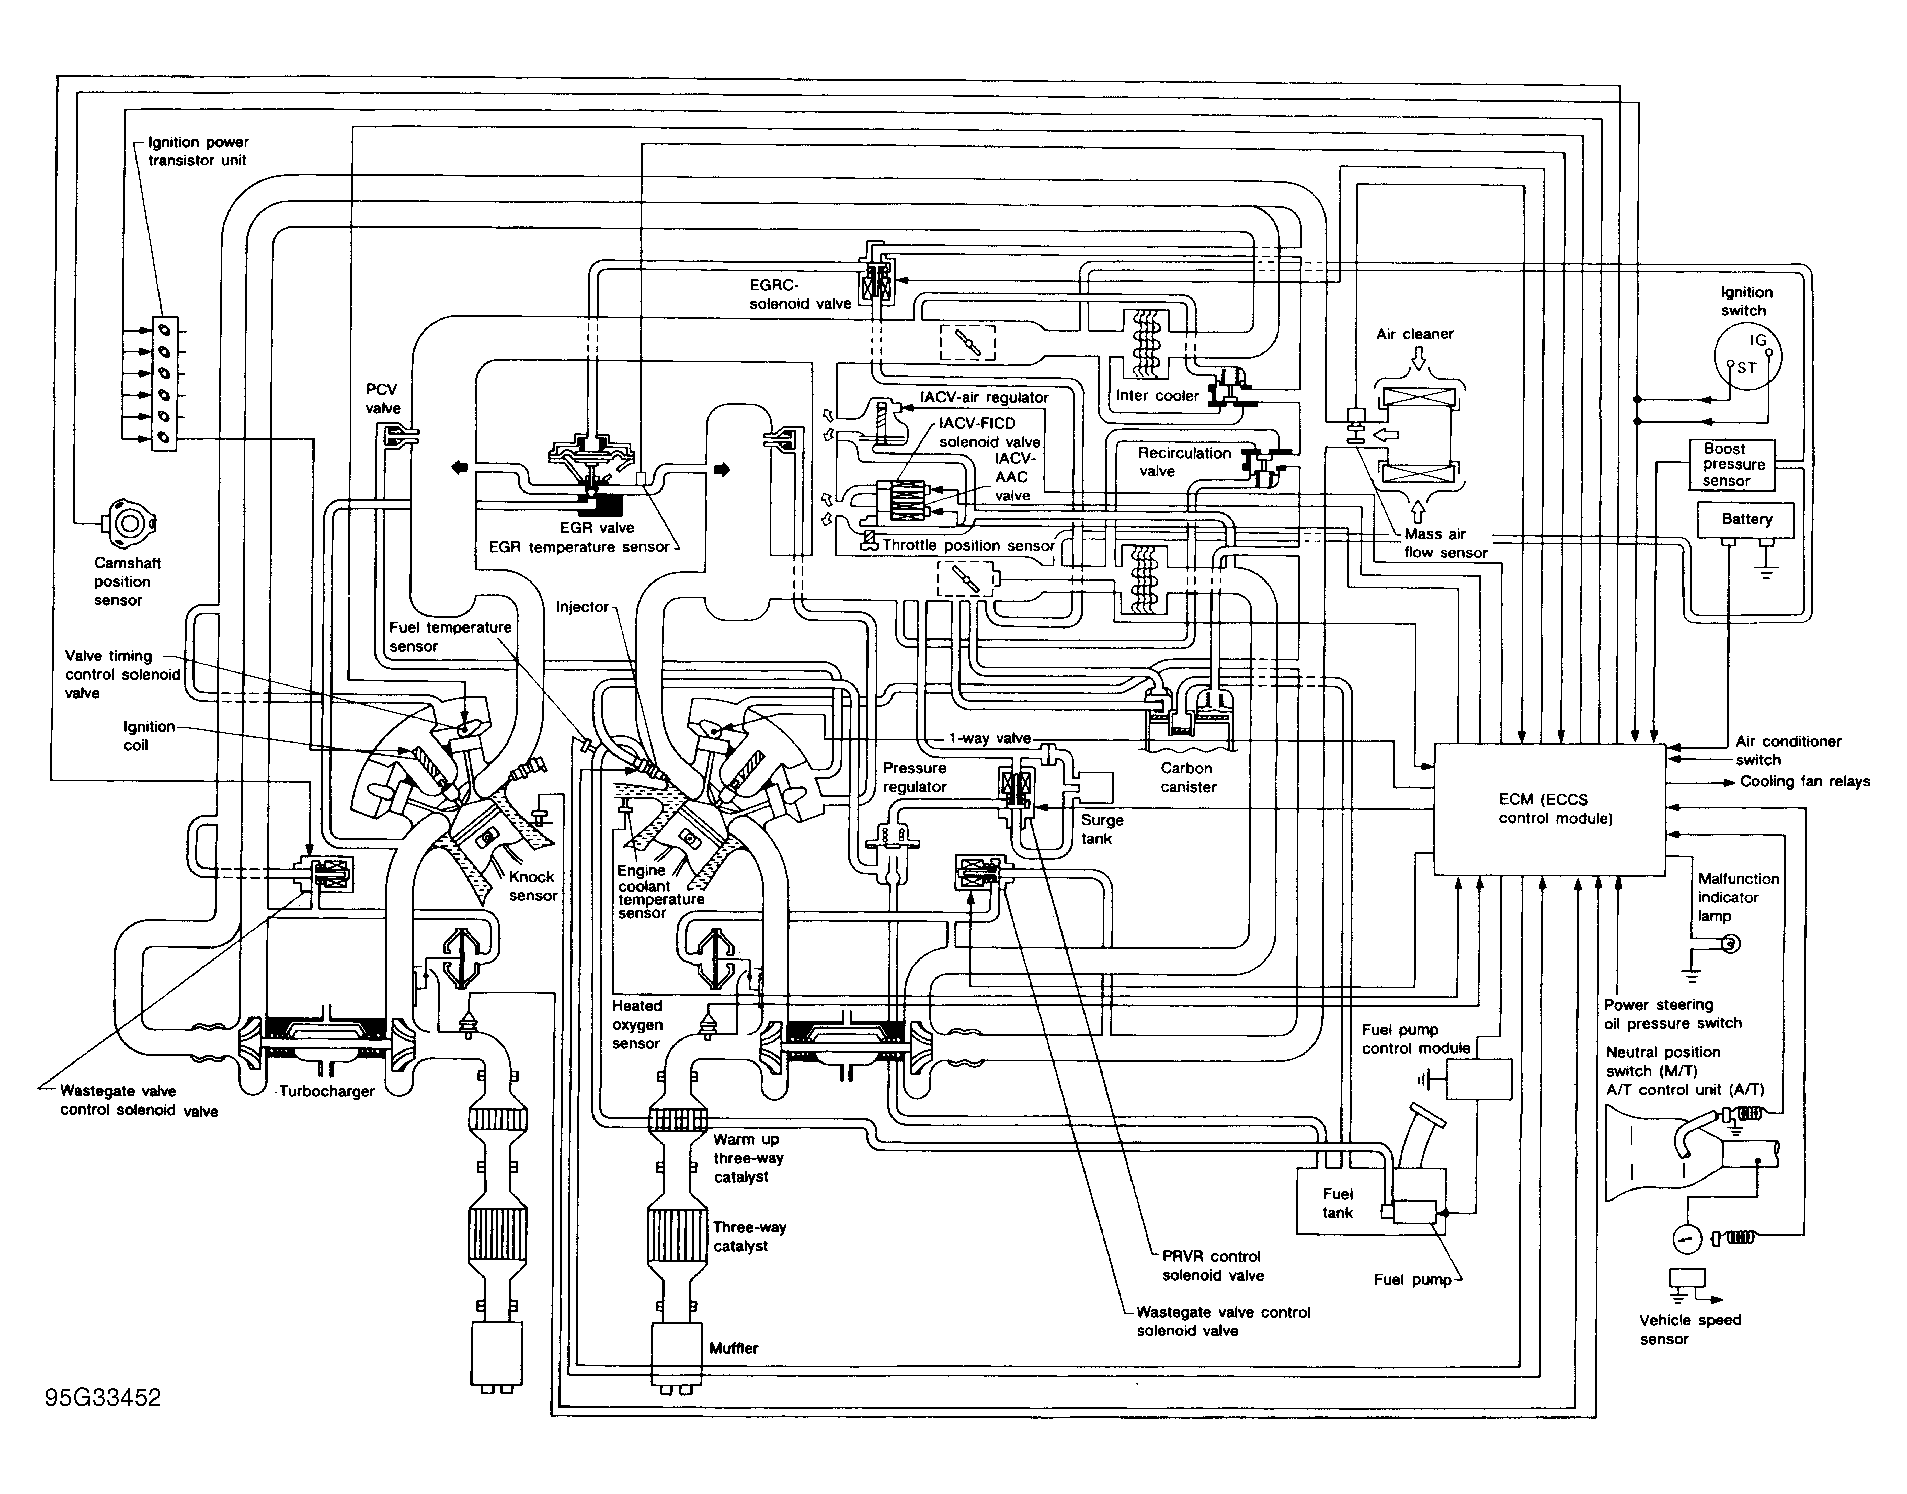 1995 Nissan 300zx Vacuum Diagram Circuit Schematic Wiring For 1988 Looking A Detailed Vaccuum Line Installation